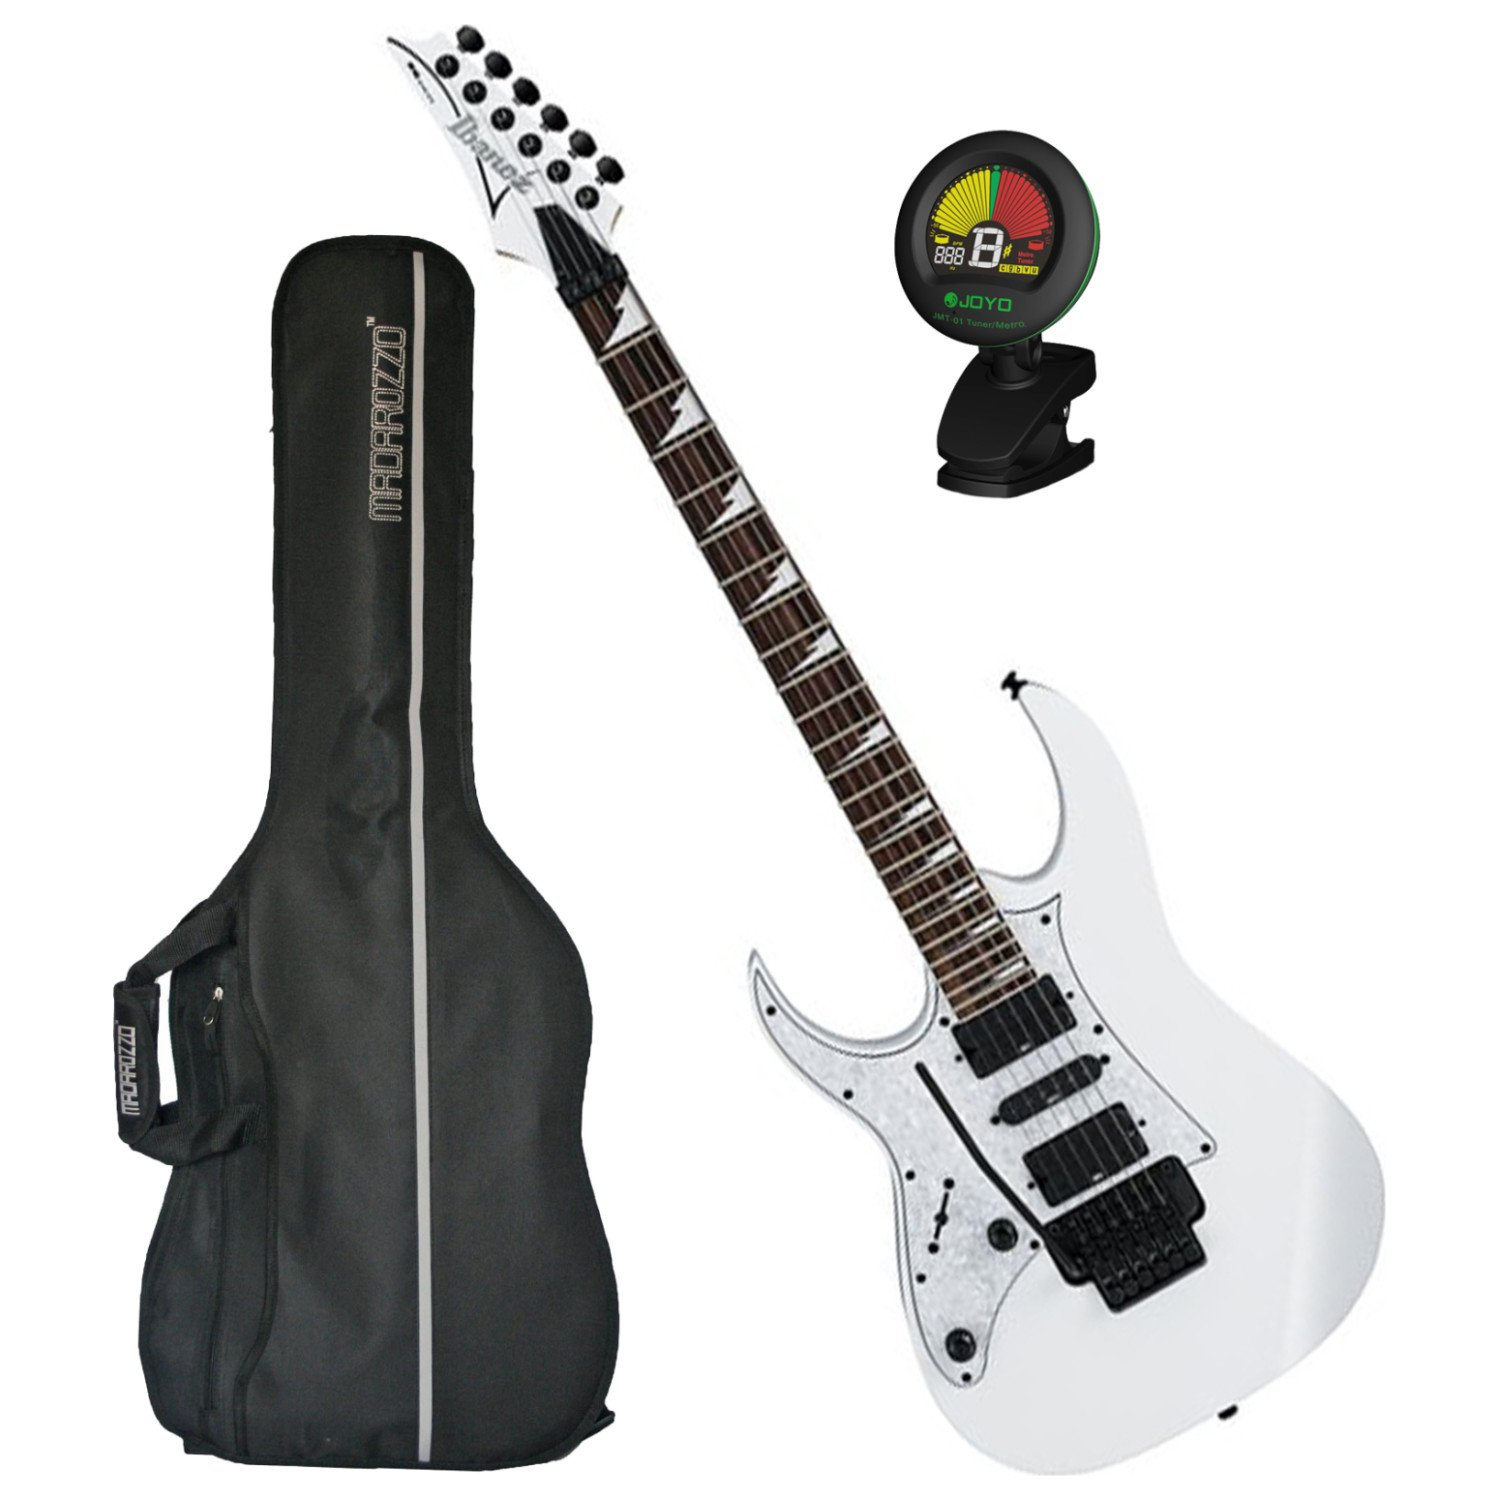 Cheap Ibanez RG450DX Electric Guitar White (Left Handed) w/ Gig Bag and Tuner! Black Friday & Cyber Monday 2019